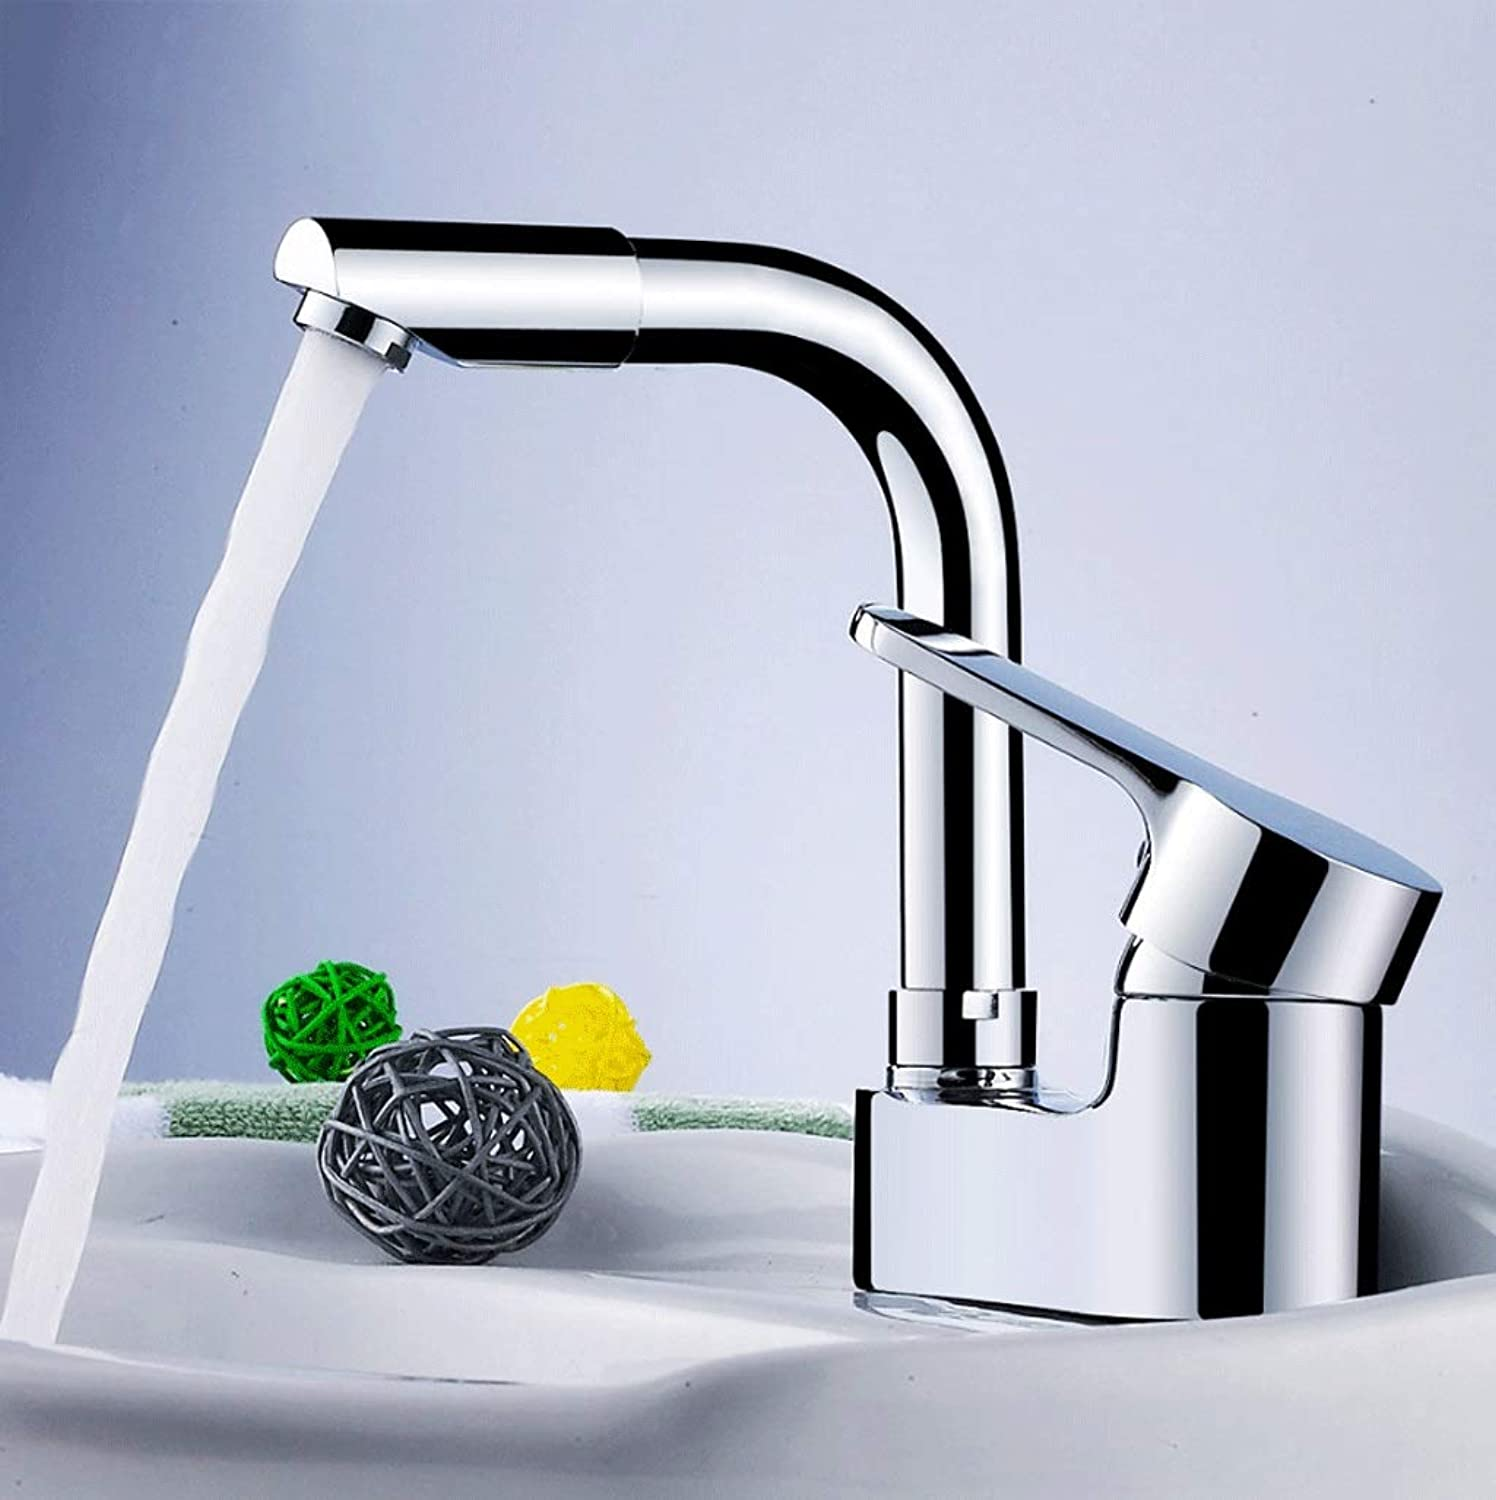 All-copper Double-hole Basin Hot And Cold Water Faucet Can redate Three Holes Of Water